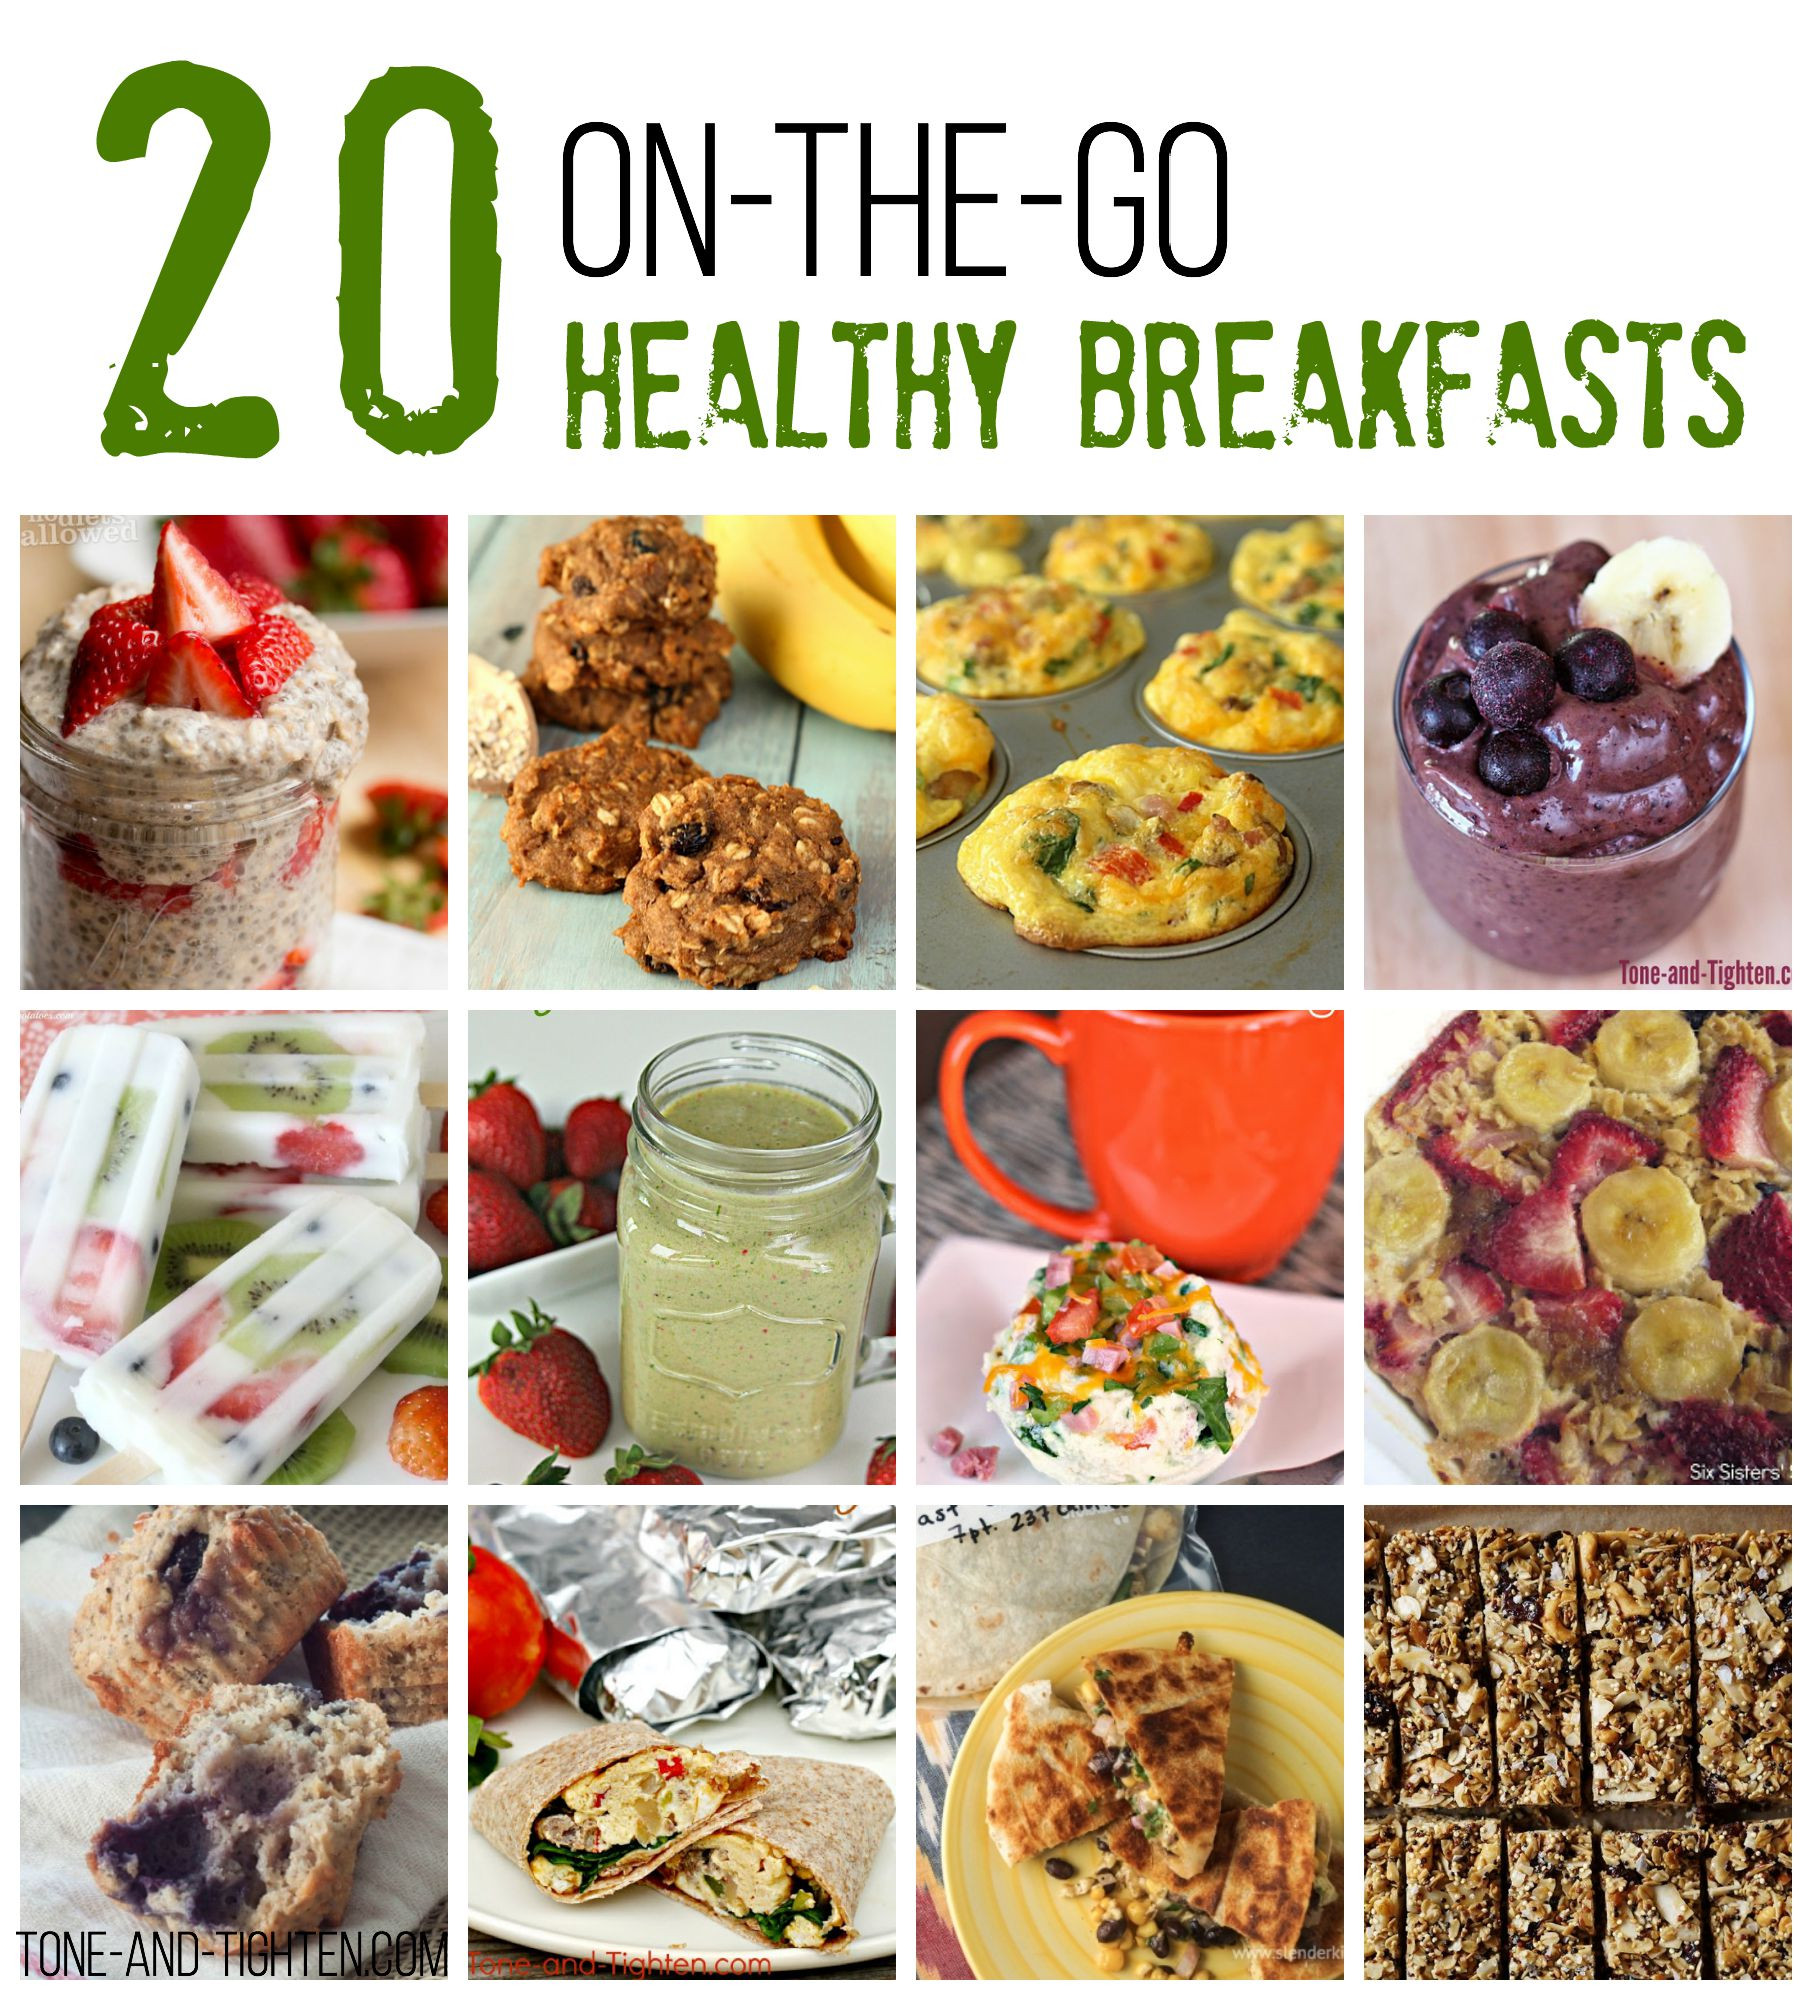 Healthy Breakfast Foods On the Go the Best 20 the Go Healthy Breakfast Recipes